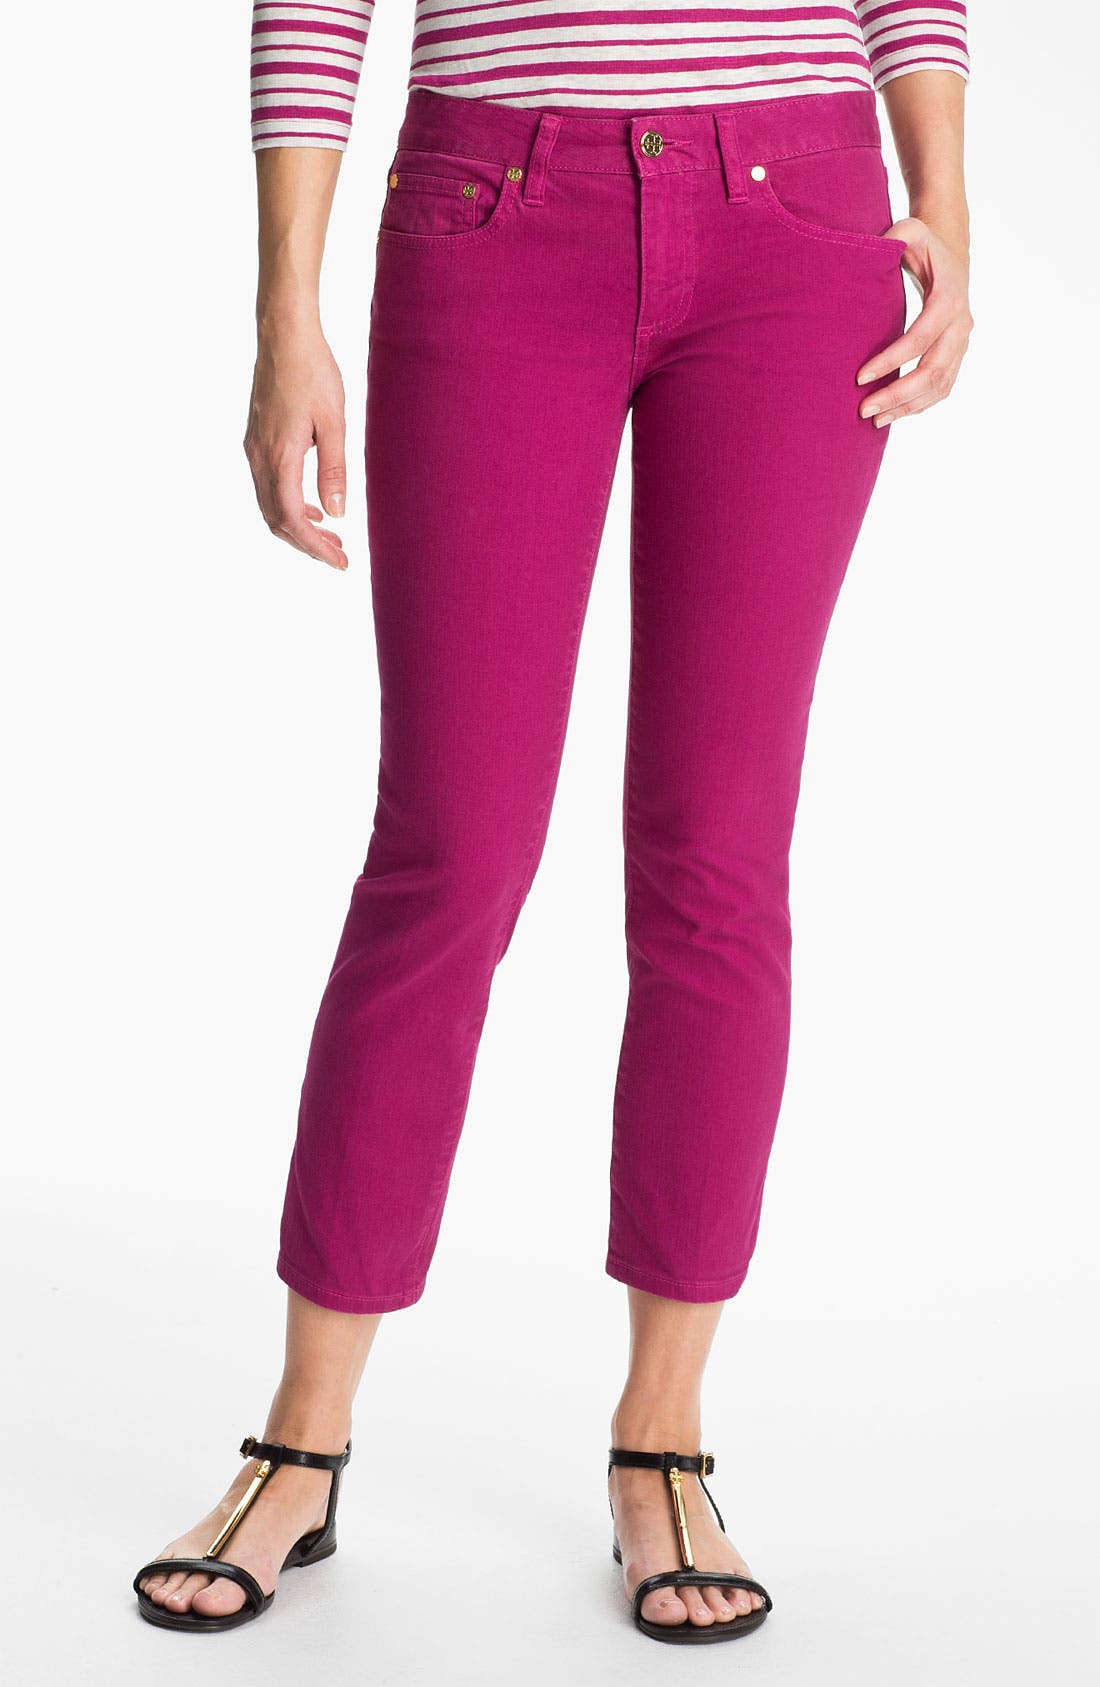 Main Image - Tory Burch 'Alexia' Crop Skinny Stretch Jeans